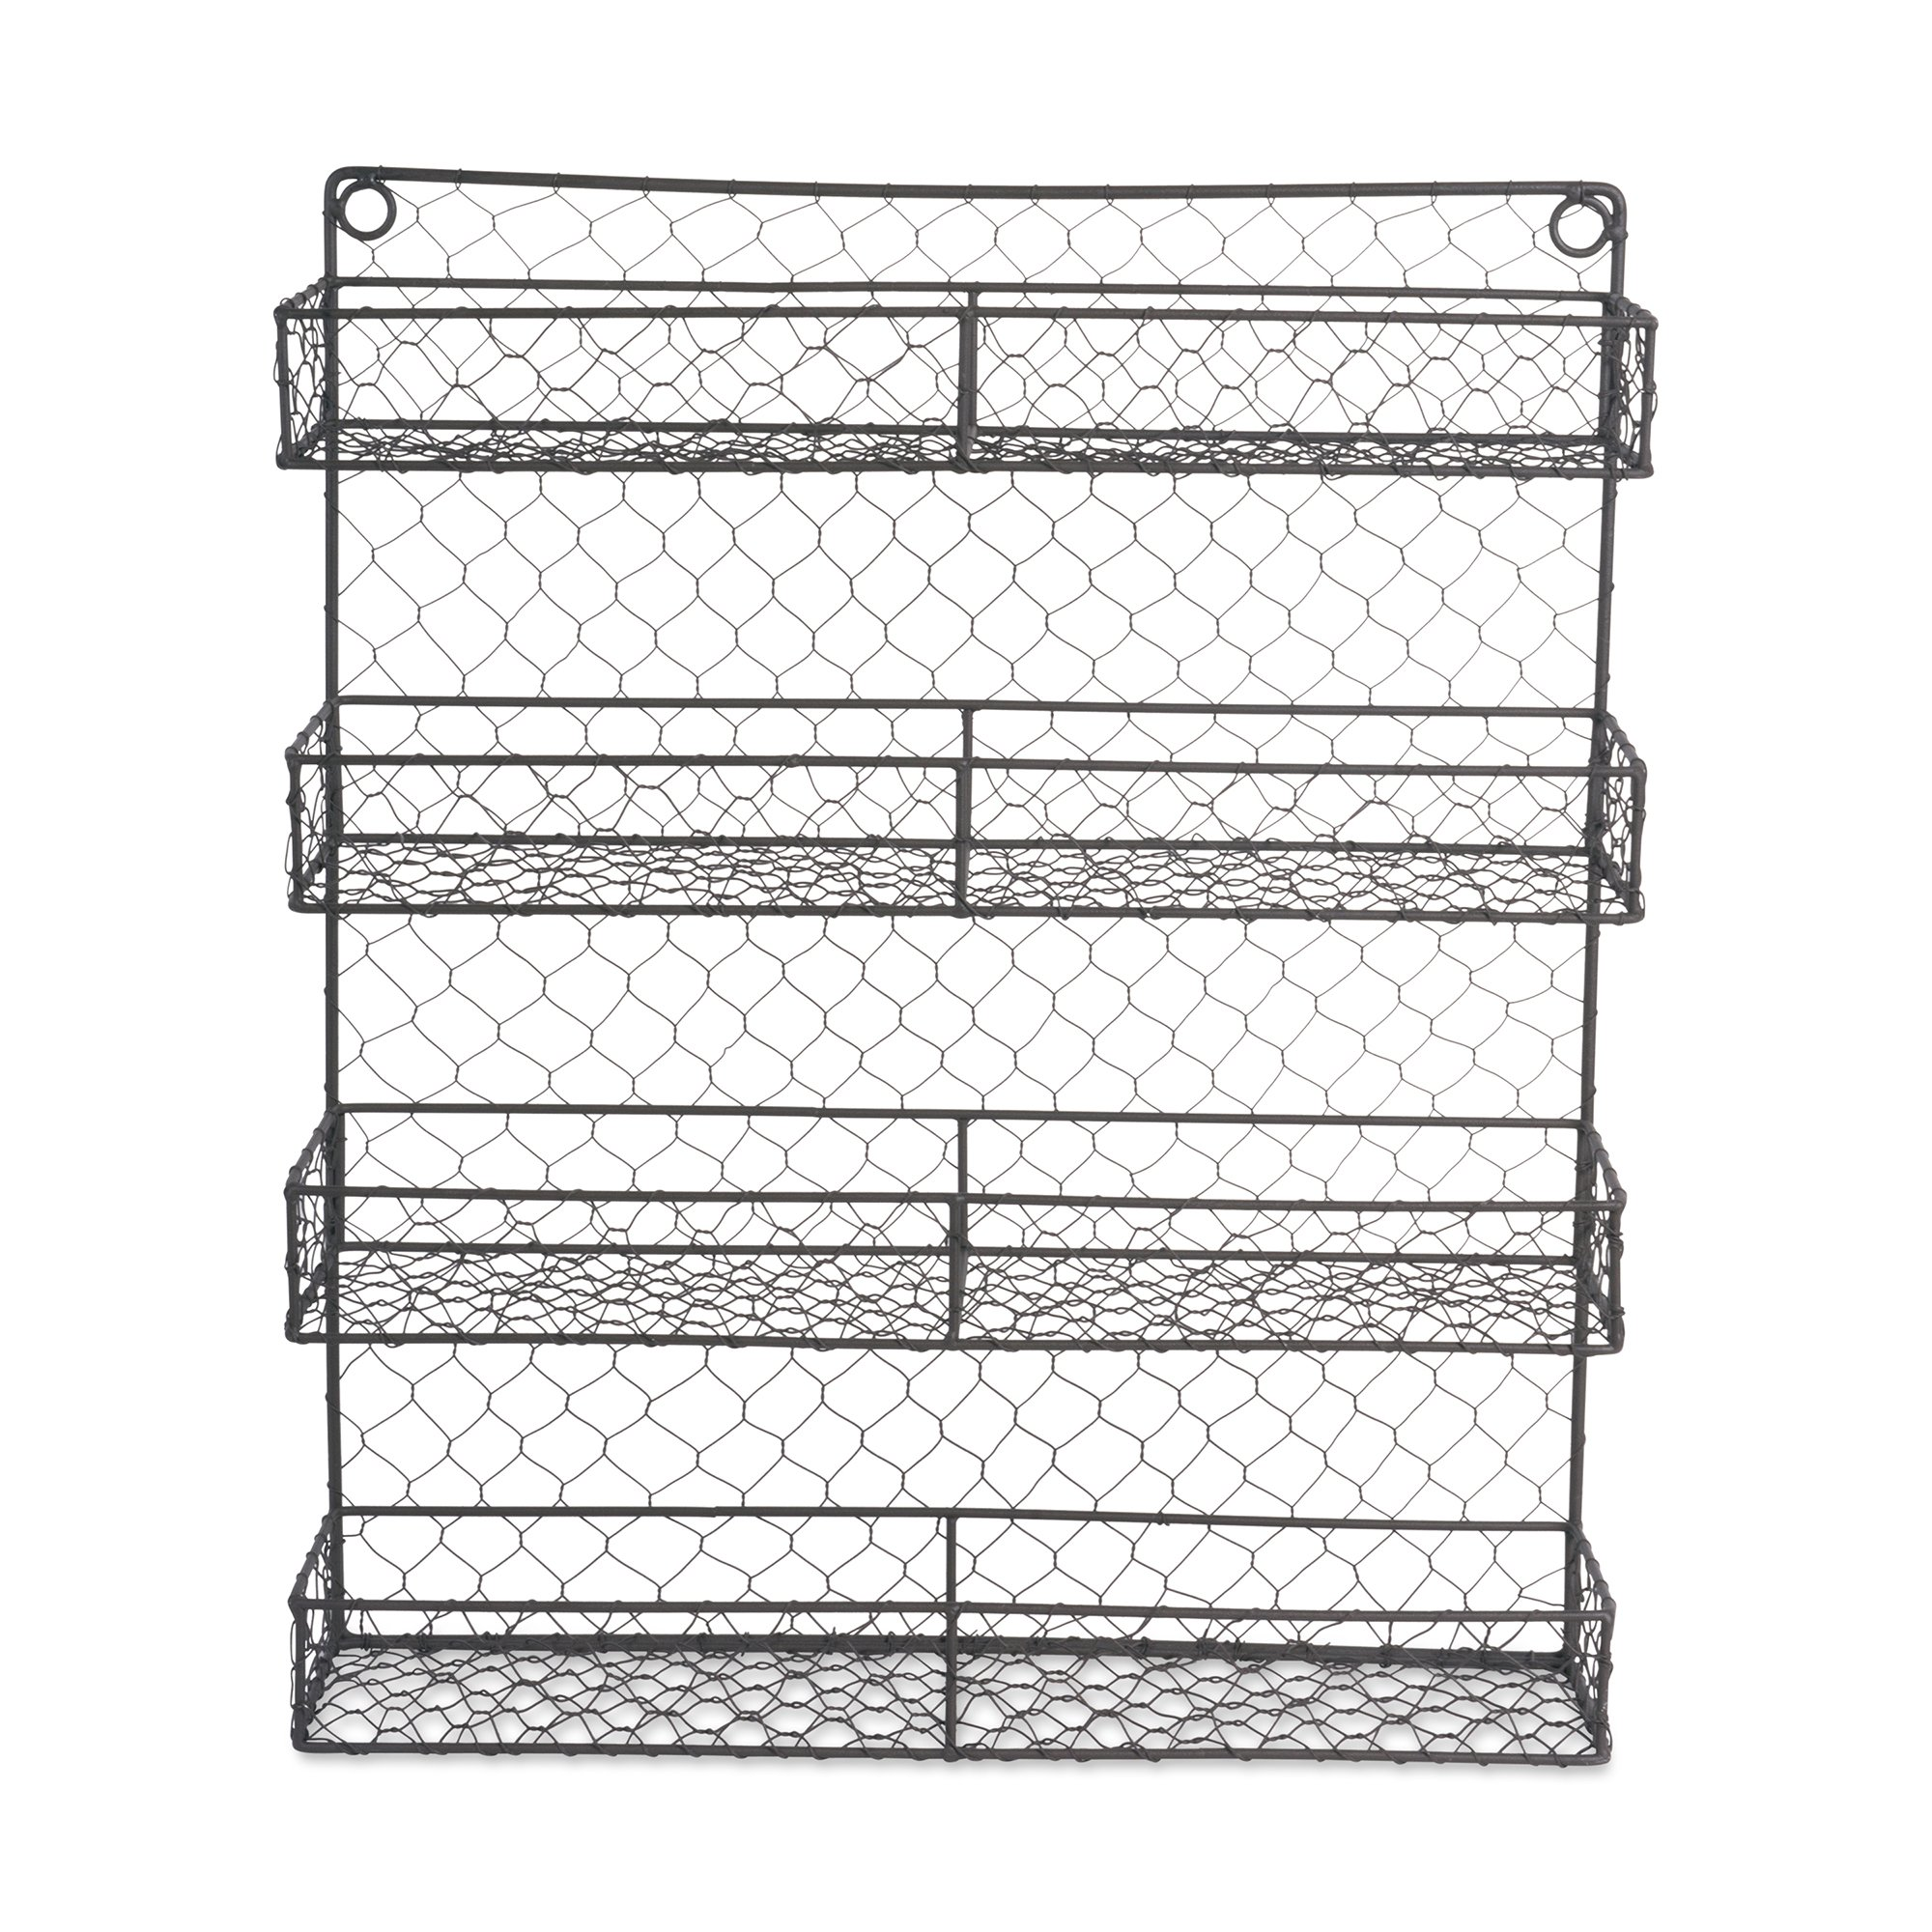 Home Traditions Z01920 Farmhouse Vintage Metal Chicken Wire Spice Rack Organizer for Kitchen Wall, Pantry Or Cabinet, Antique Finish, Large17 x4.75''x20'', 4 Tier Double Shelf Depth Spice Rack-Rustic